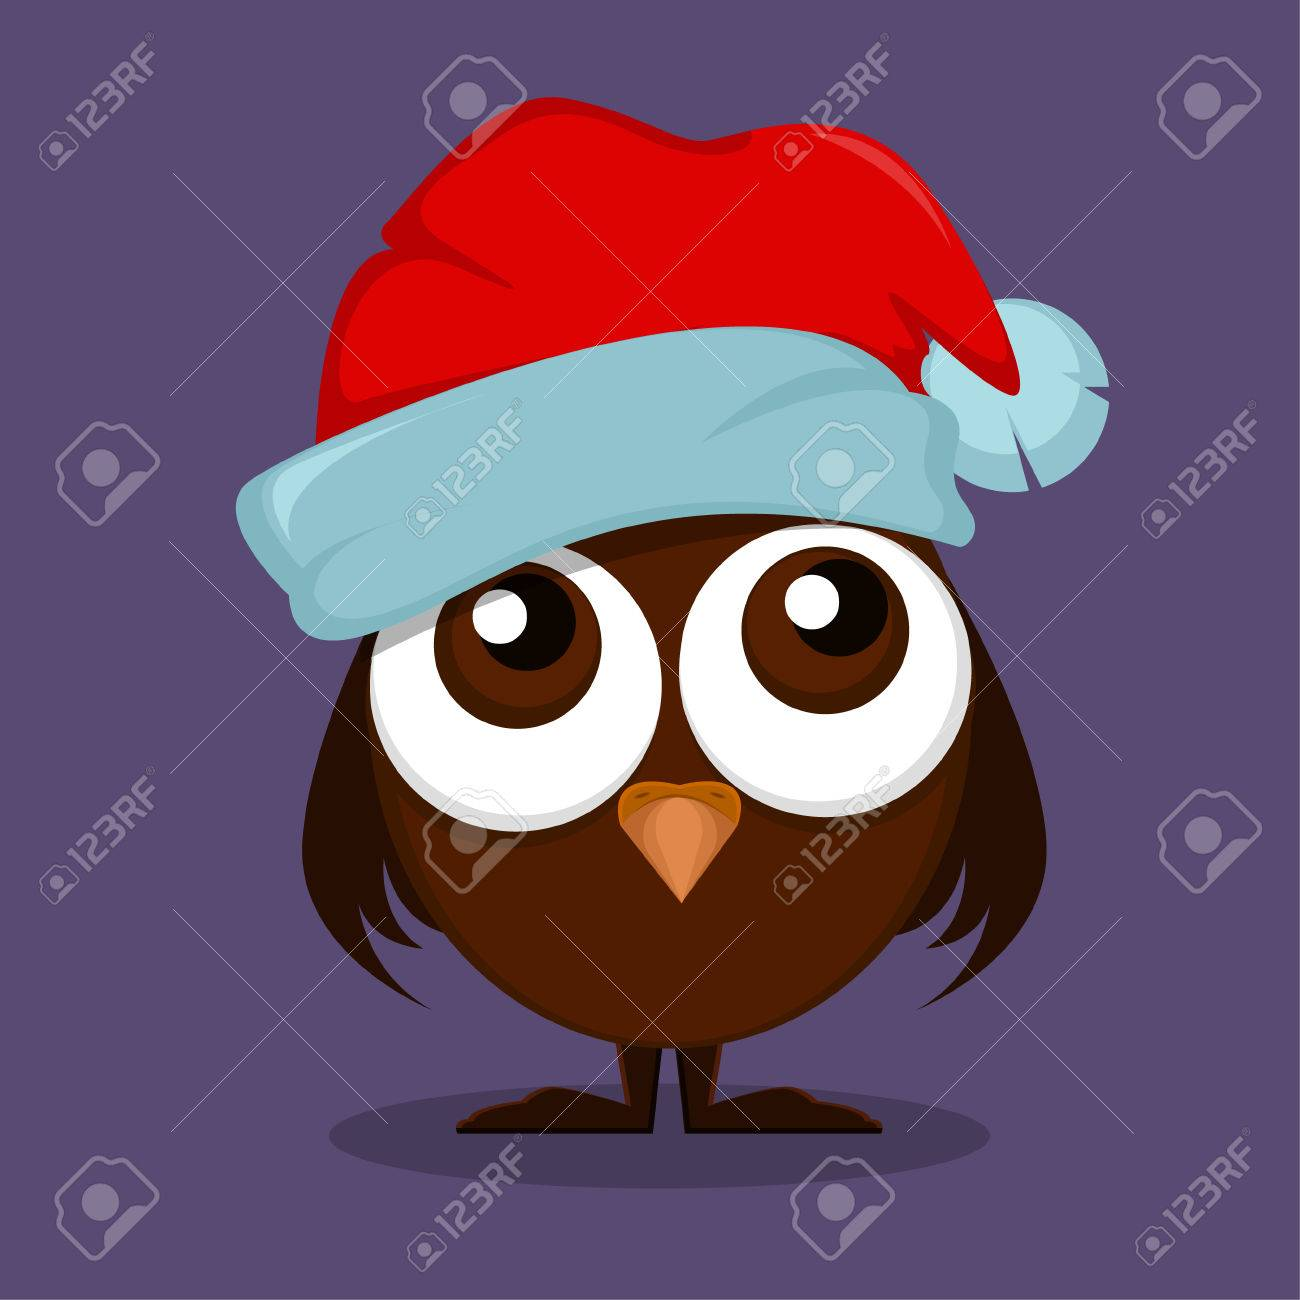 1300x1300 Owlet In Christmas Hat With Big Eyes Wishes Merry Christmas